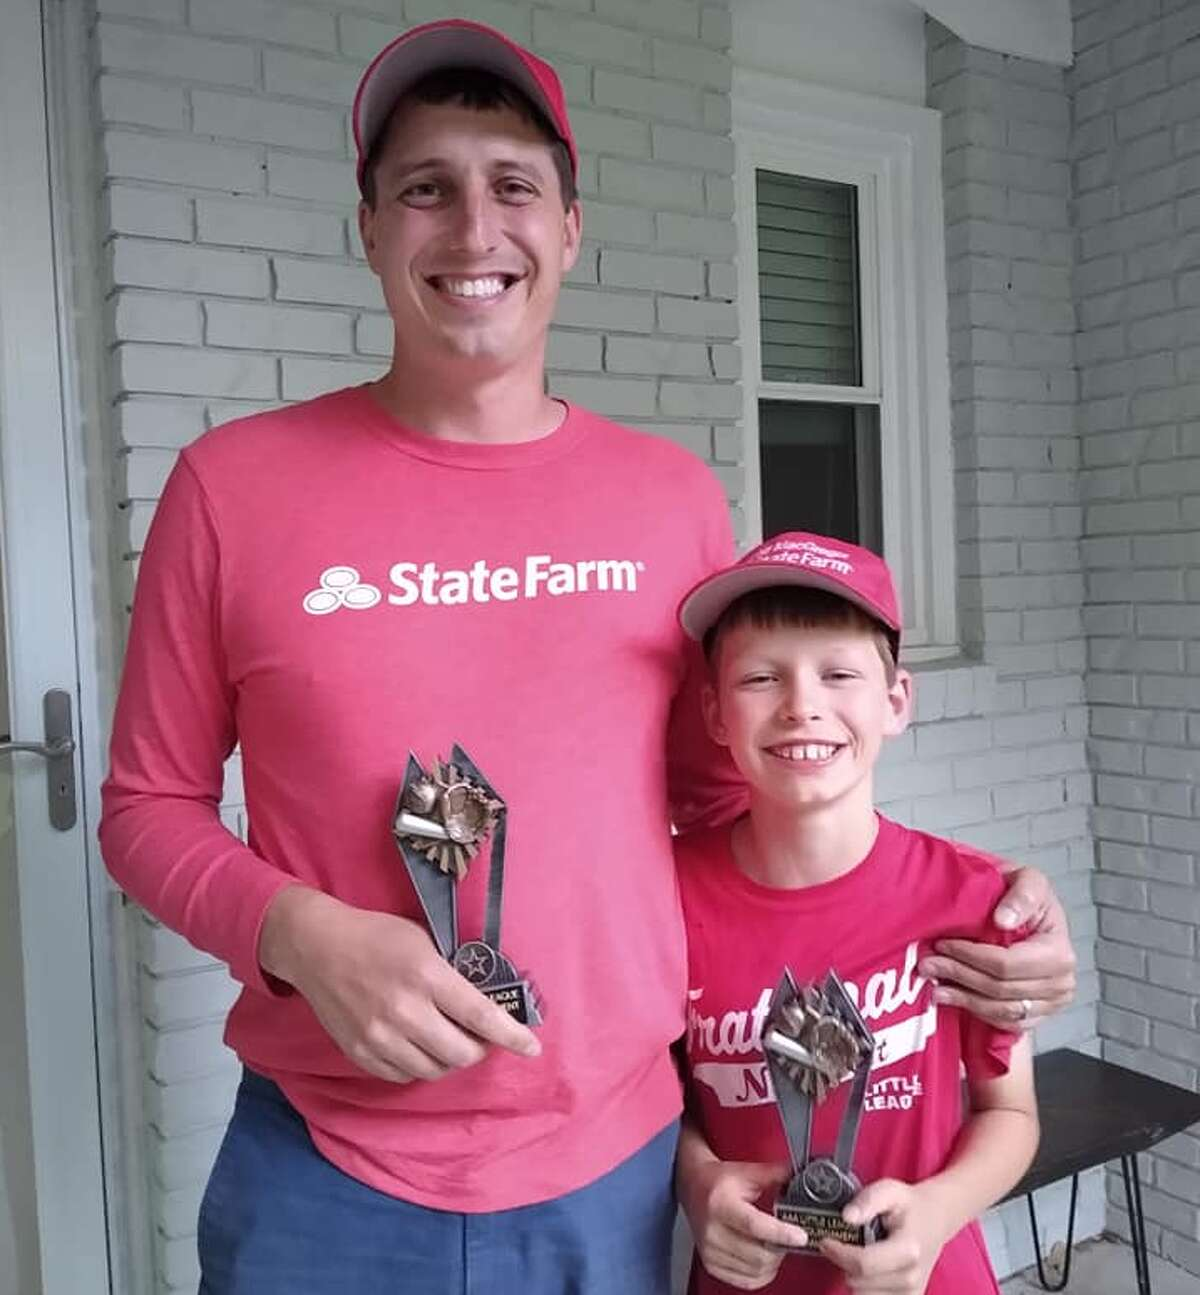 Midland's Grayson Skorup, alongside his father Jarrett, poses with his championship trophy after winning the local Pitch, Hit and Run local competition in the Boys' 7-8 baseball age division at Dow Diamond on May 15, 2021. Skorup will compete in the state finals at Comerica Park in Detroit on Aug. 28.